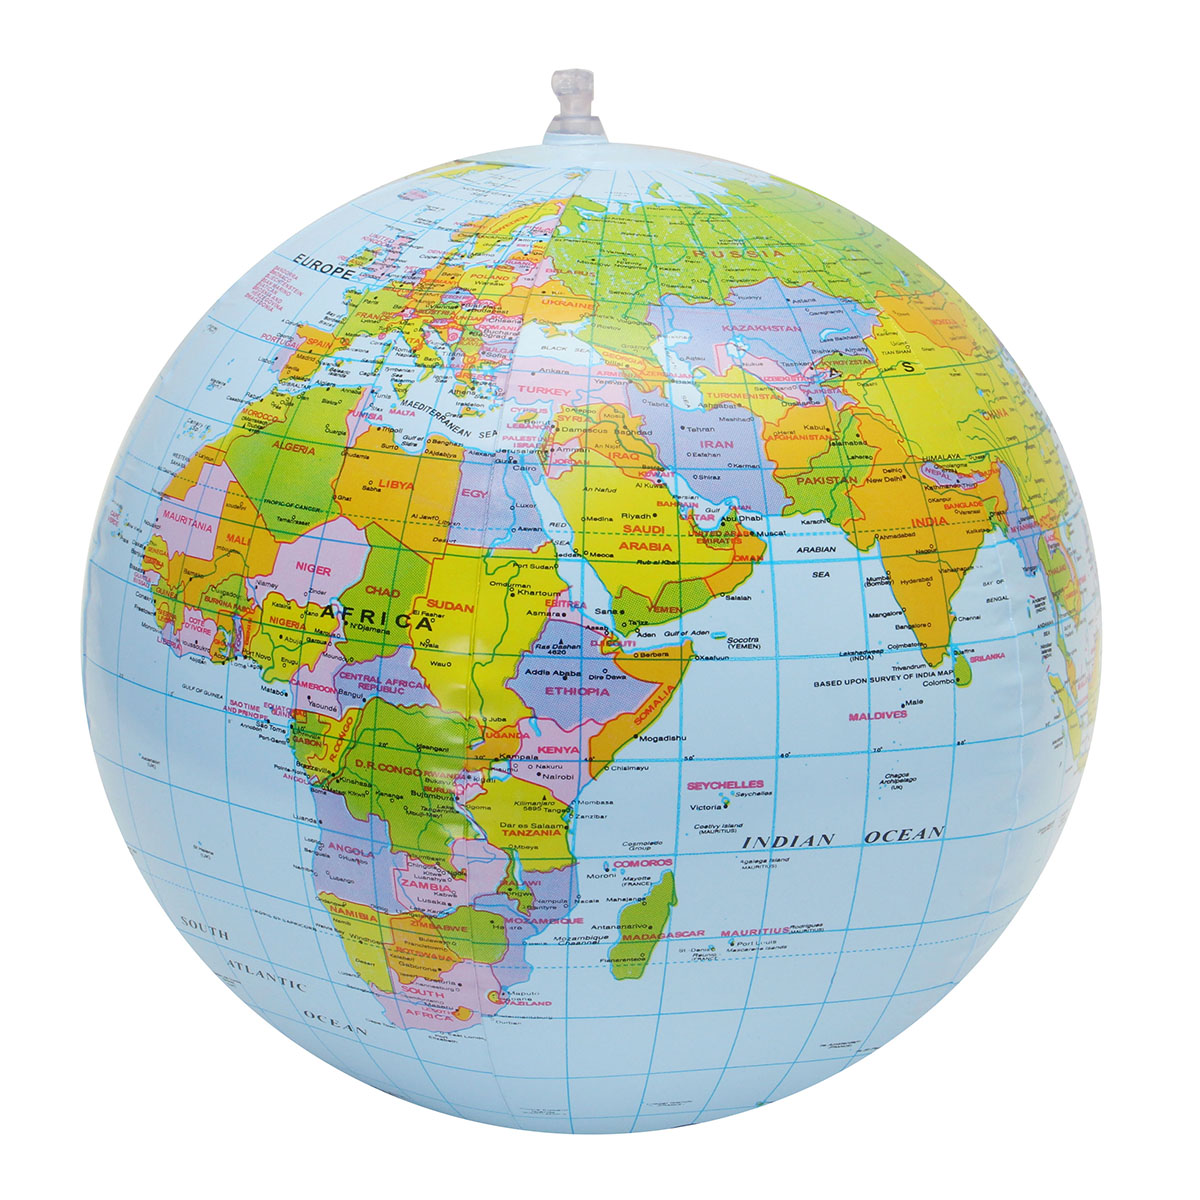 New 30cm Inflatable Globe World Earth Ocean Map Ball Geography Learning Educational Ball Children Toy Home Office Decoration